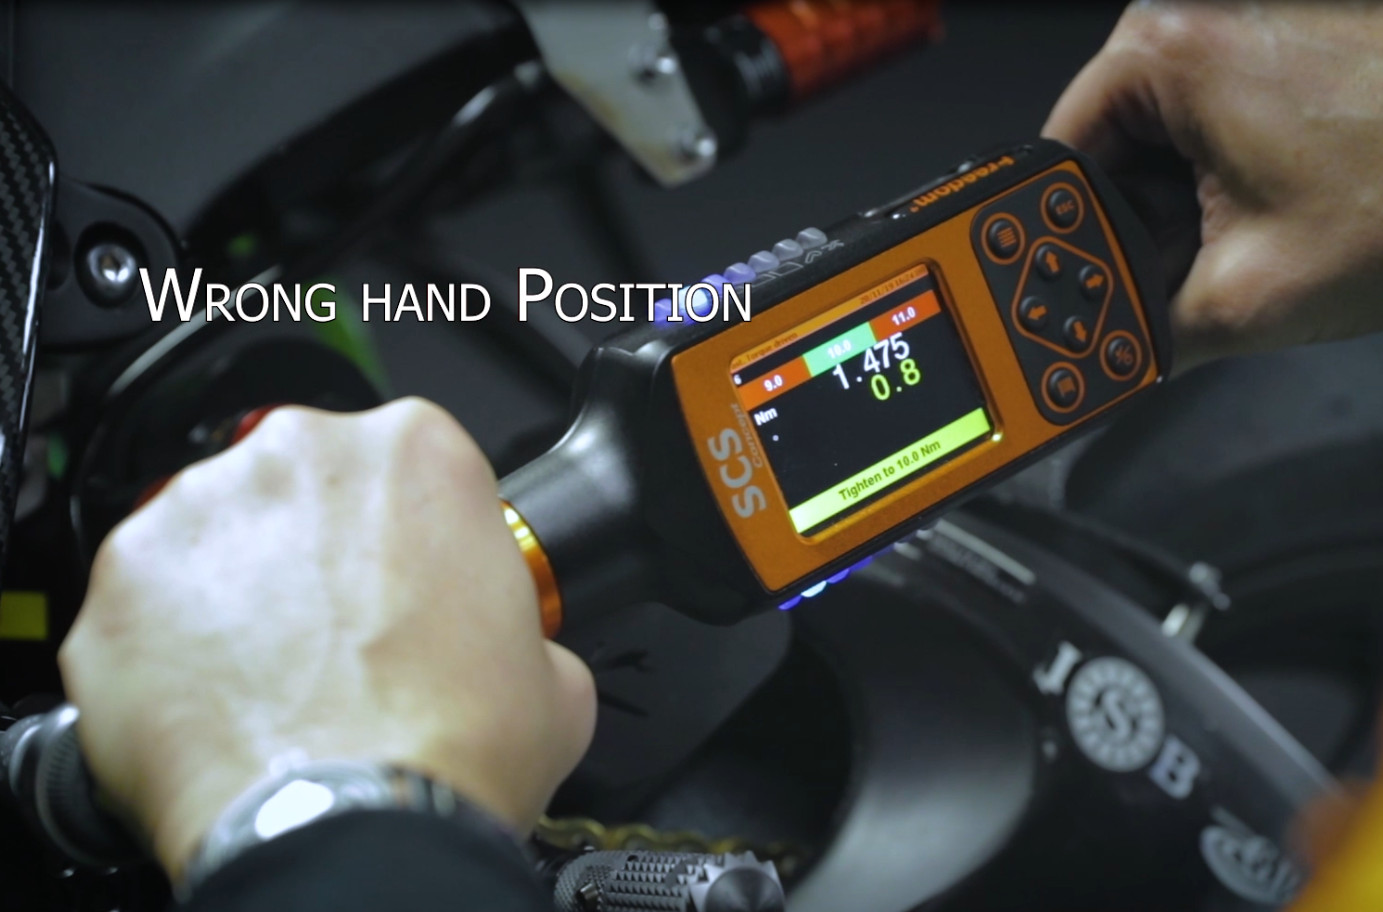 Freedom4: Hand position automatic recognition